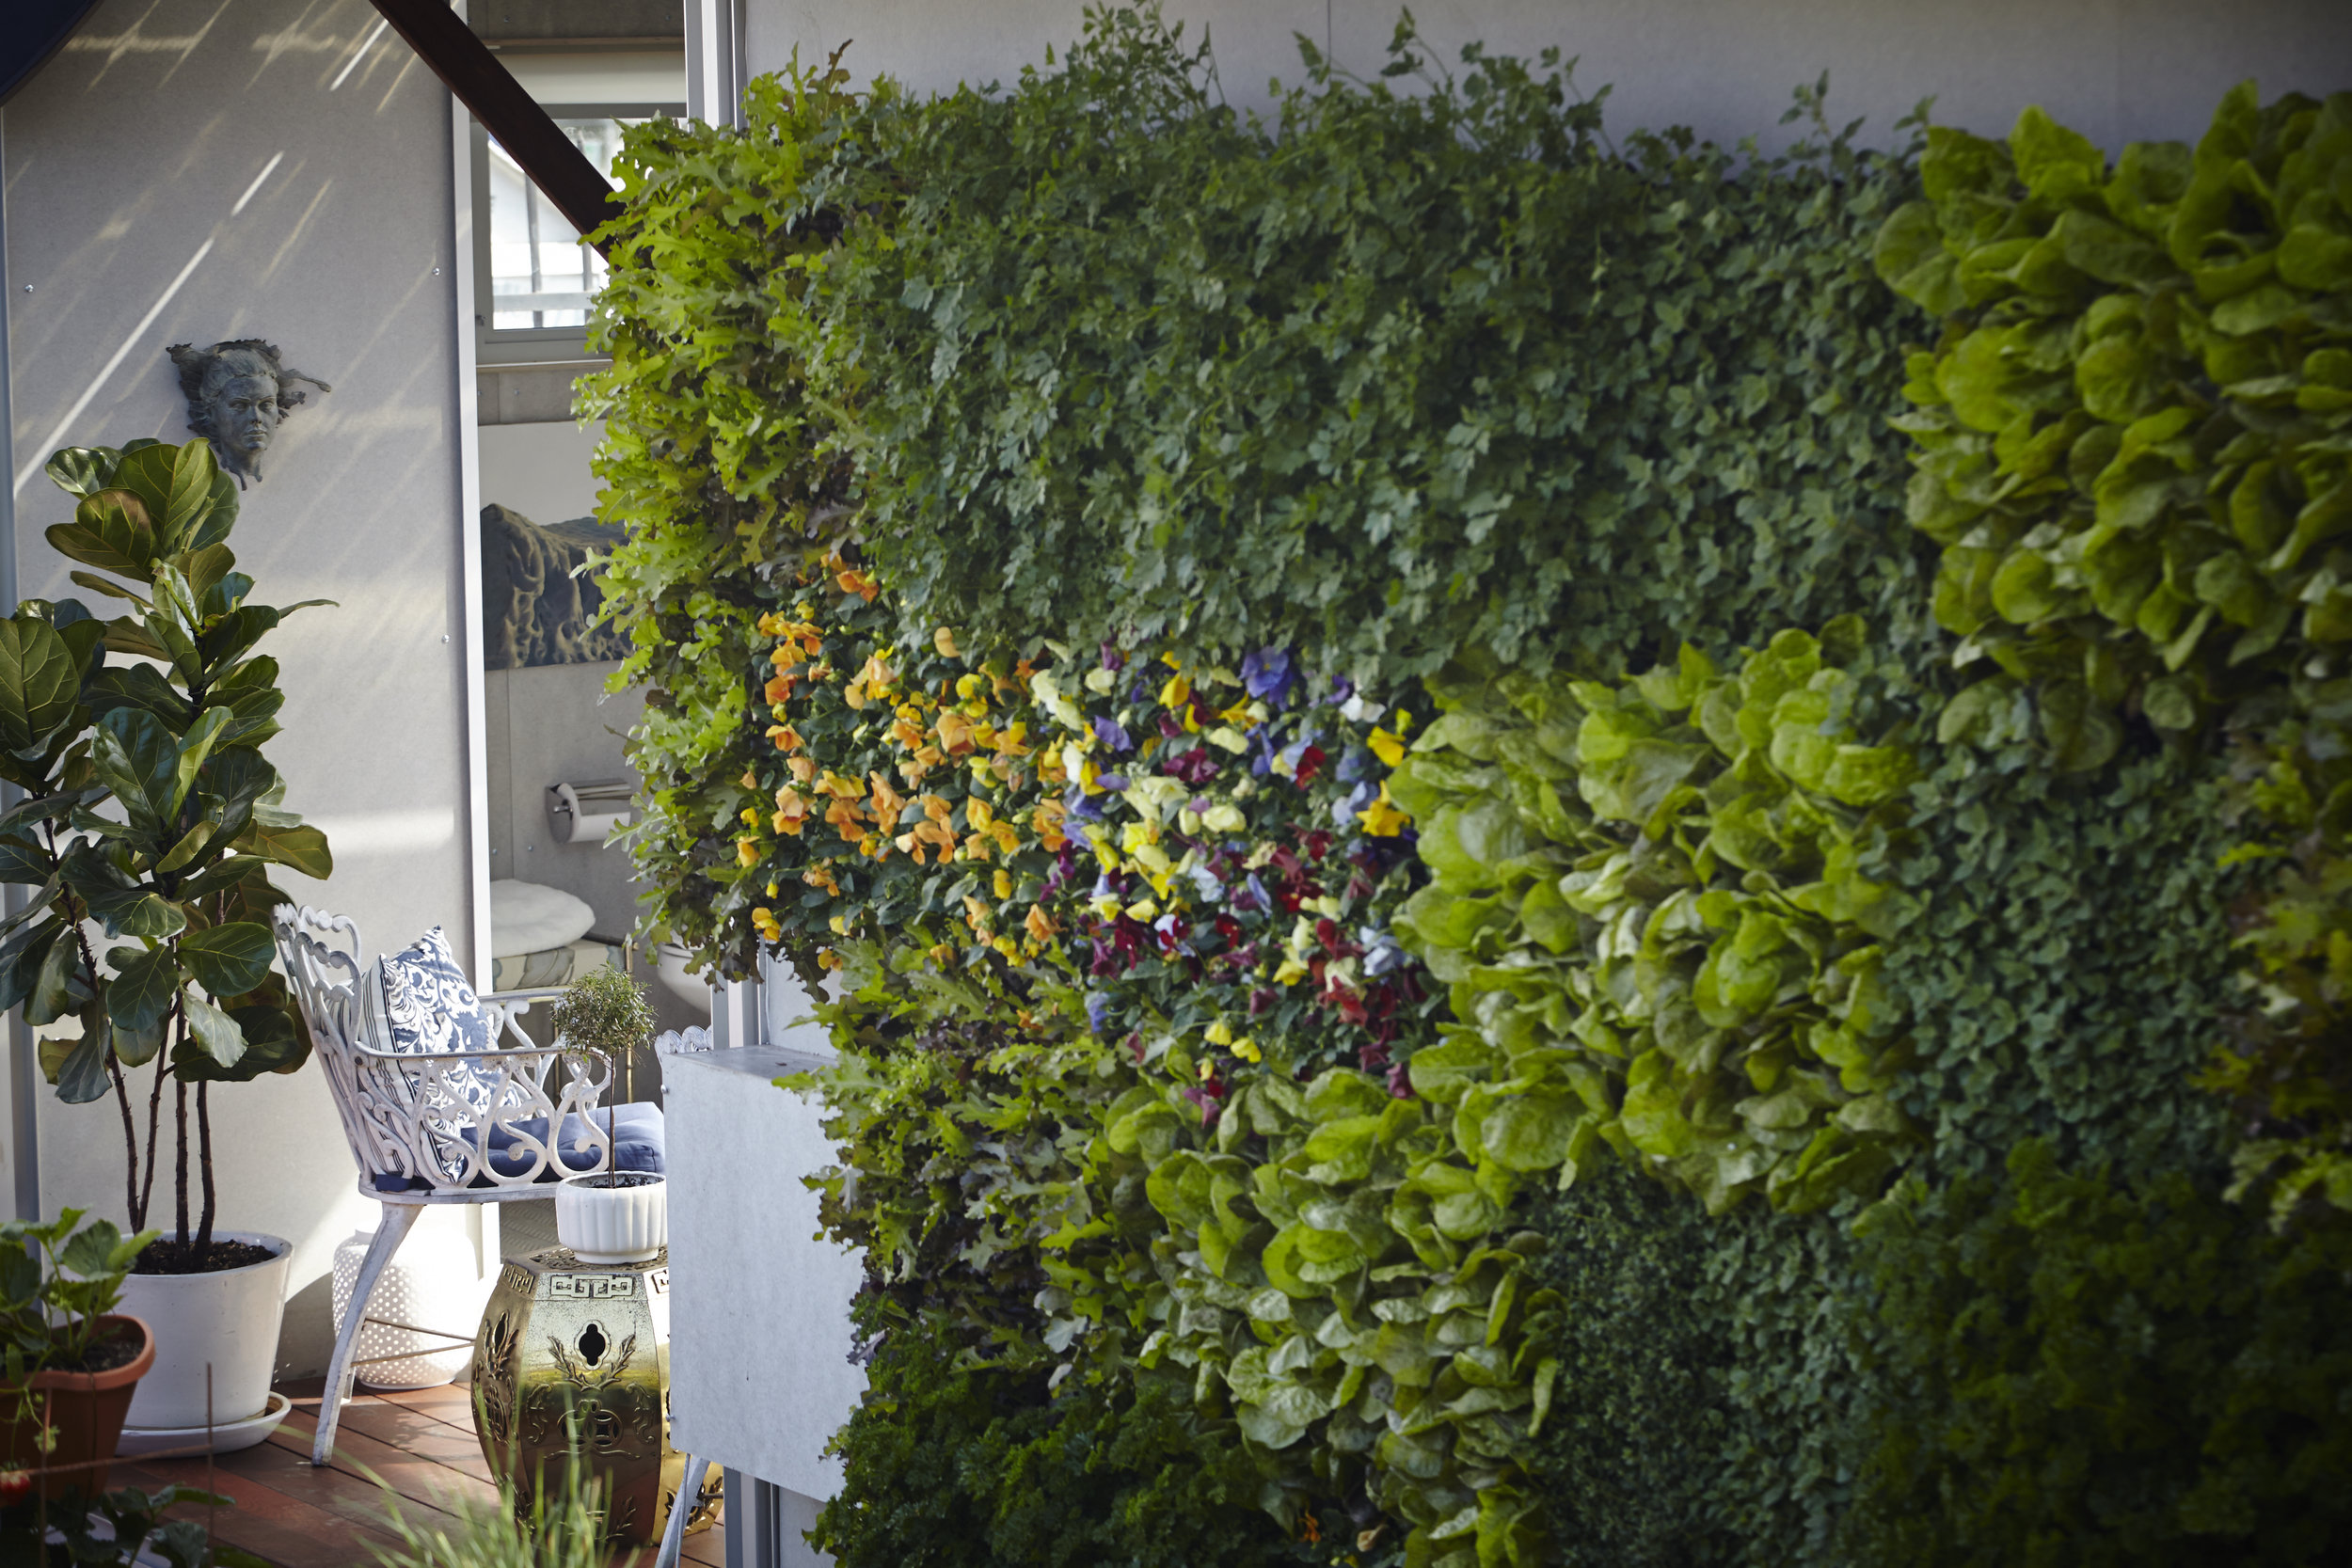 S.E.A.-Studio-Environmental-Architecture-David-Hertz-FAIA-Airbnb-Ecopod-Venice-Beach-California-sustainable-regenerative-restorative-green-design-passive-systems-natural-ventilation-radiant-solar-panels-greenwall-installation-Abbot-Kinney-modern-8.jpg